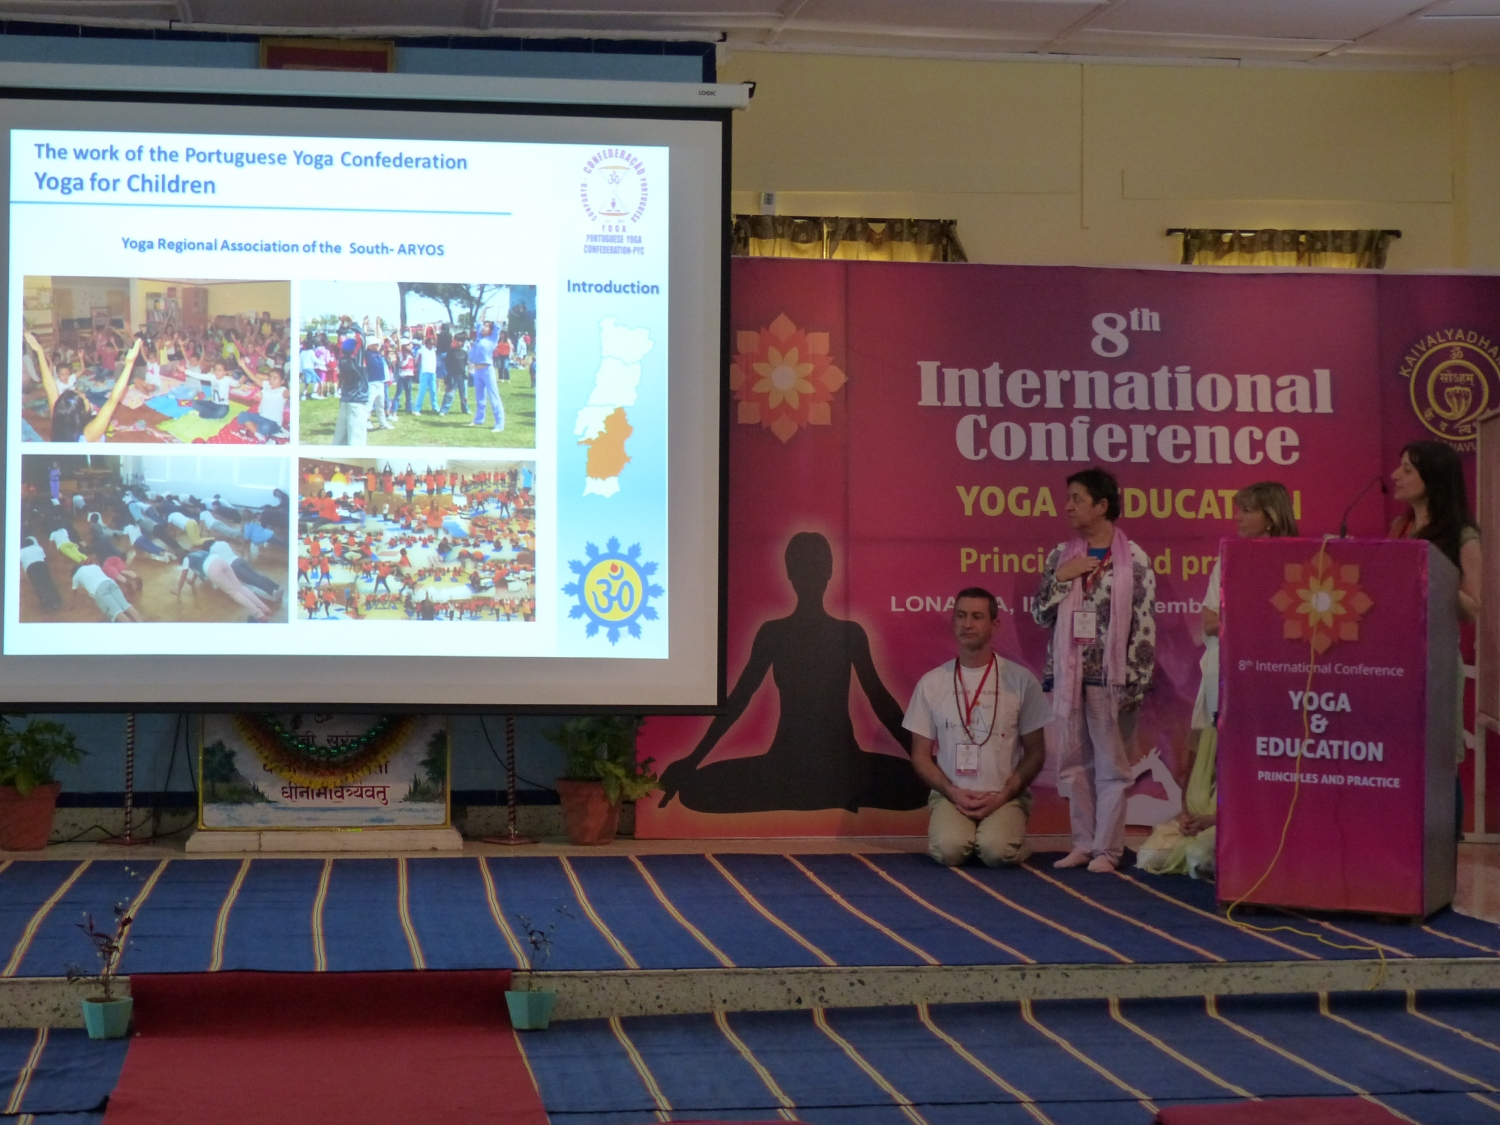 Apresentação sobre Yoga nas Escolas - 8th International Conference, Yoga & Education, Principles and Practice - Keivalyadhama Yoga Institute	 Lonavala, Índia - 2015, Dezembro